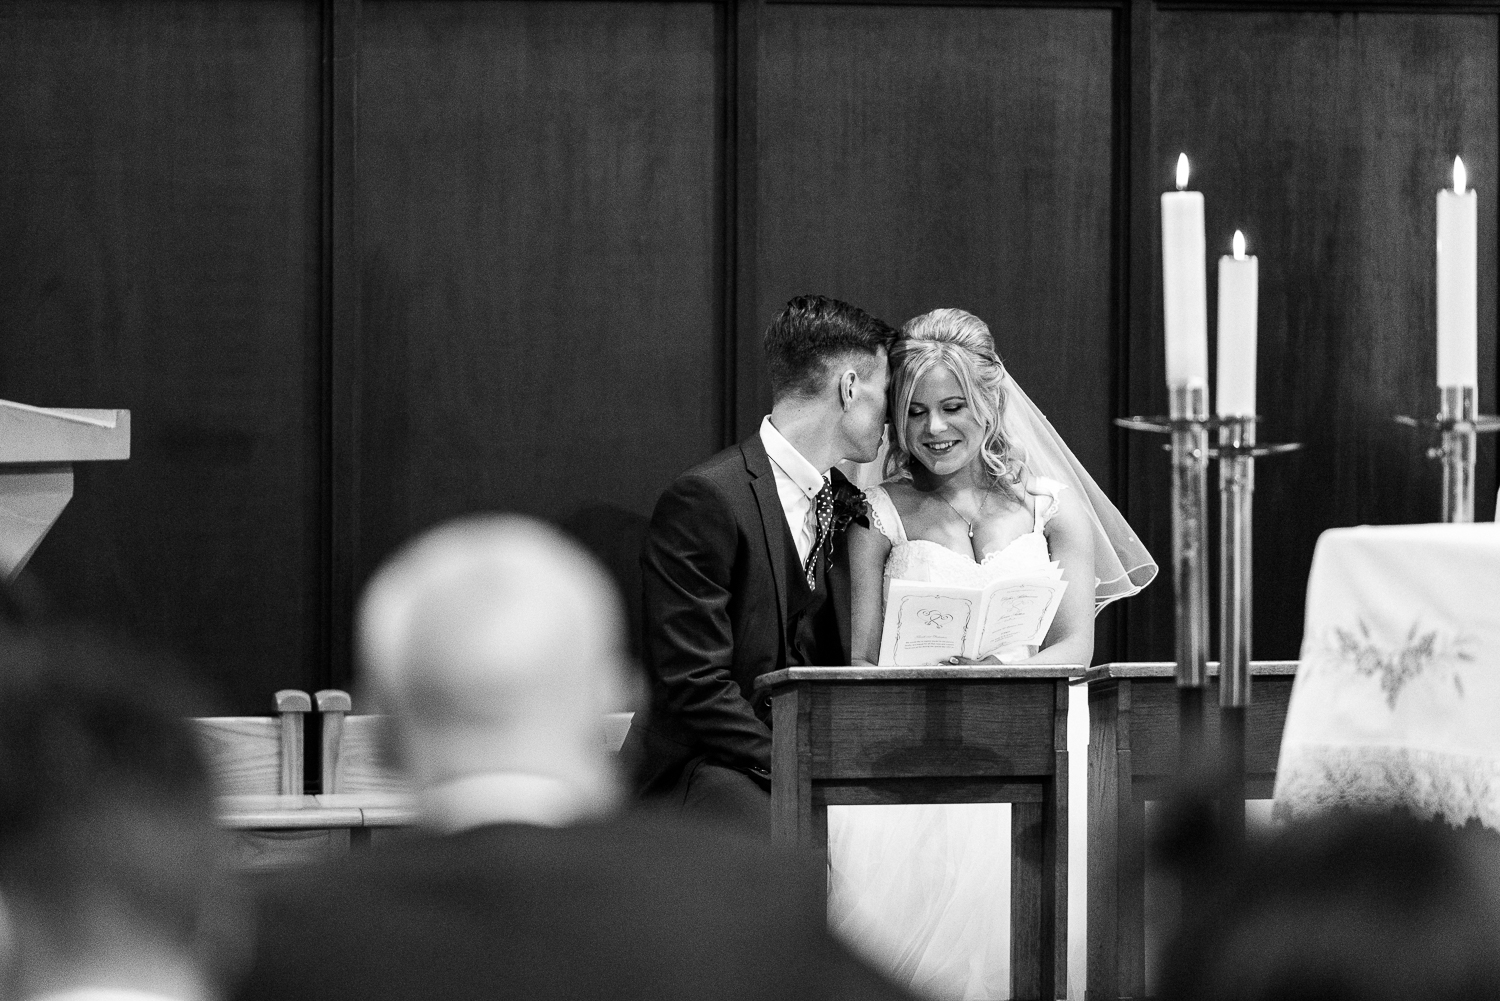 Autumn Documentary Wedding Photography at Catholic Church and Newcastle-under-Lyme Golf Club - Jenny Harper-66.jpg